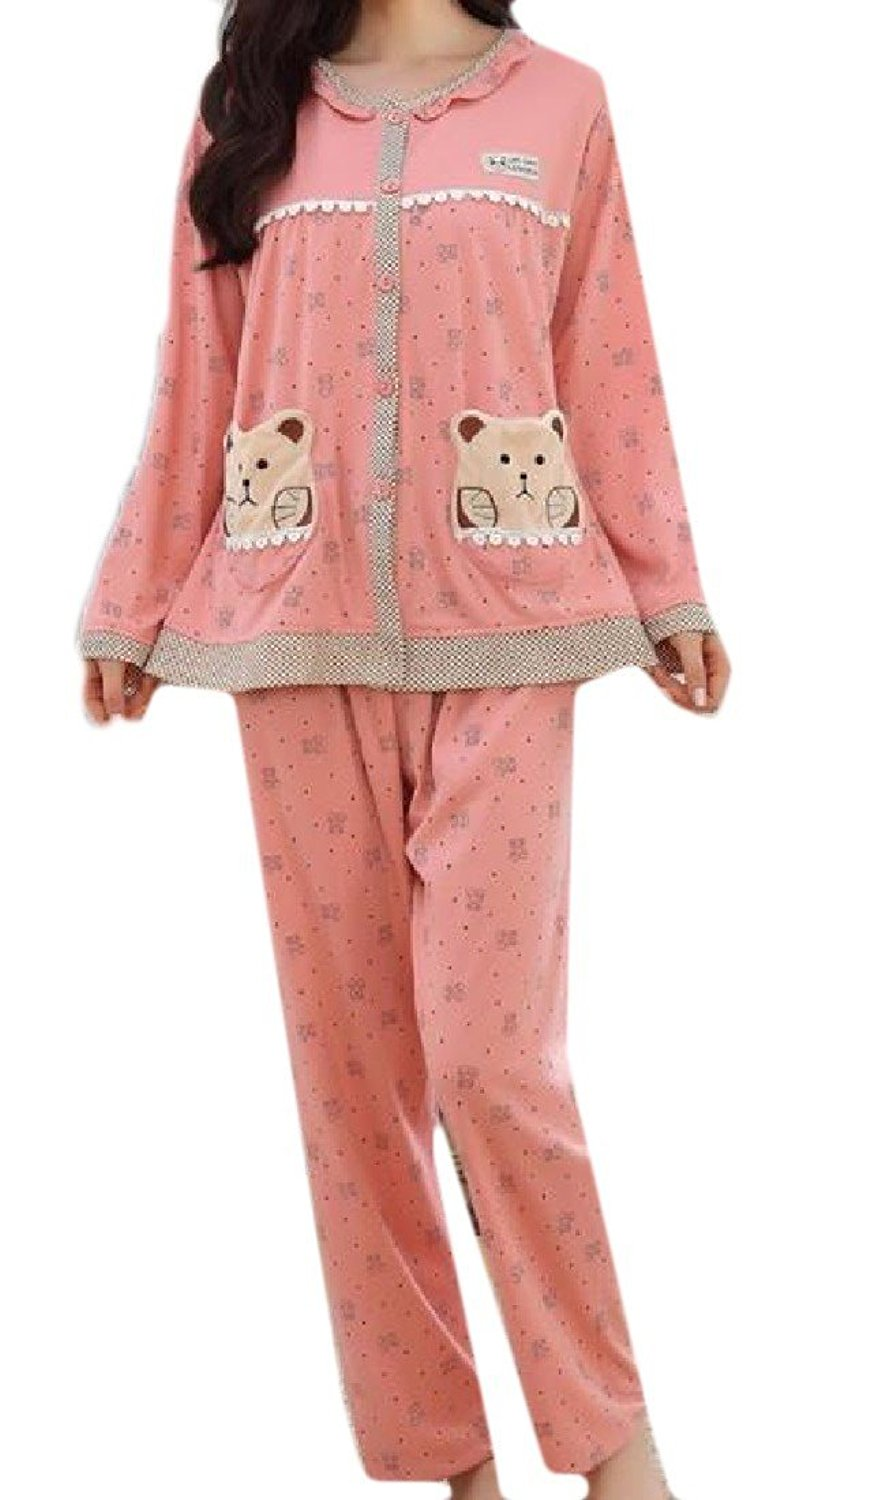 Sheng Xi Womens Printed Button Down Stitching Bear Novelty Pajama Lounge Set